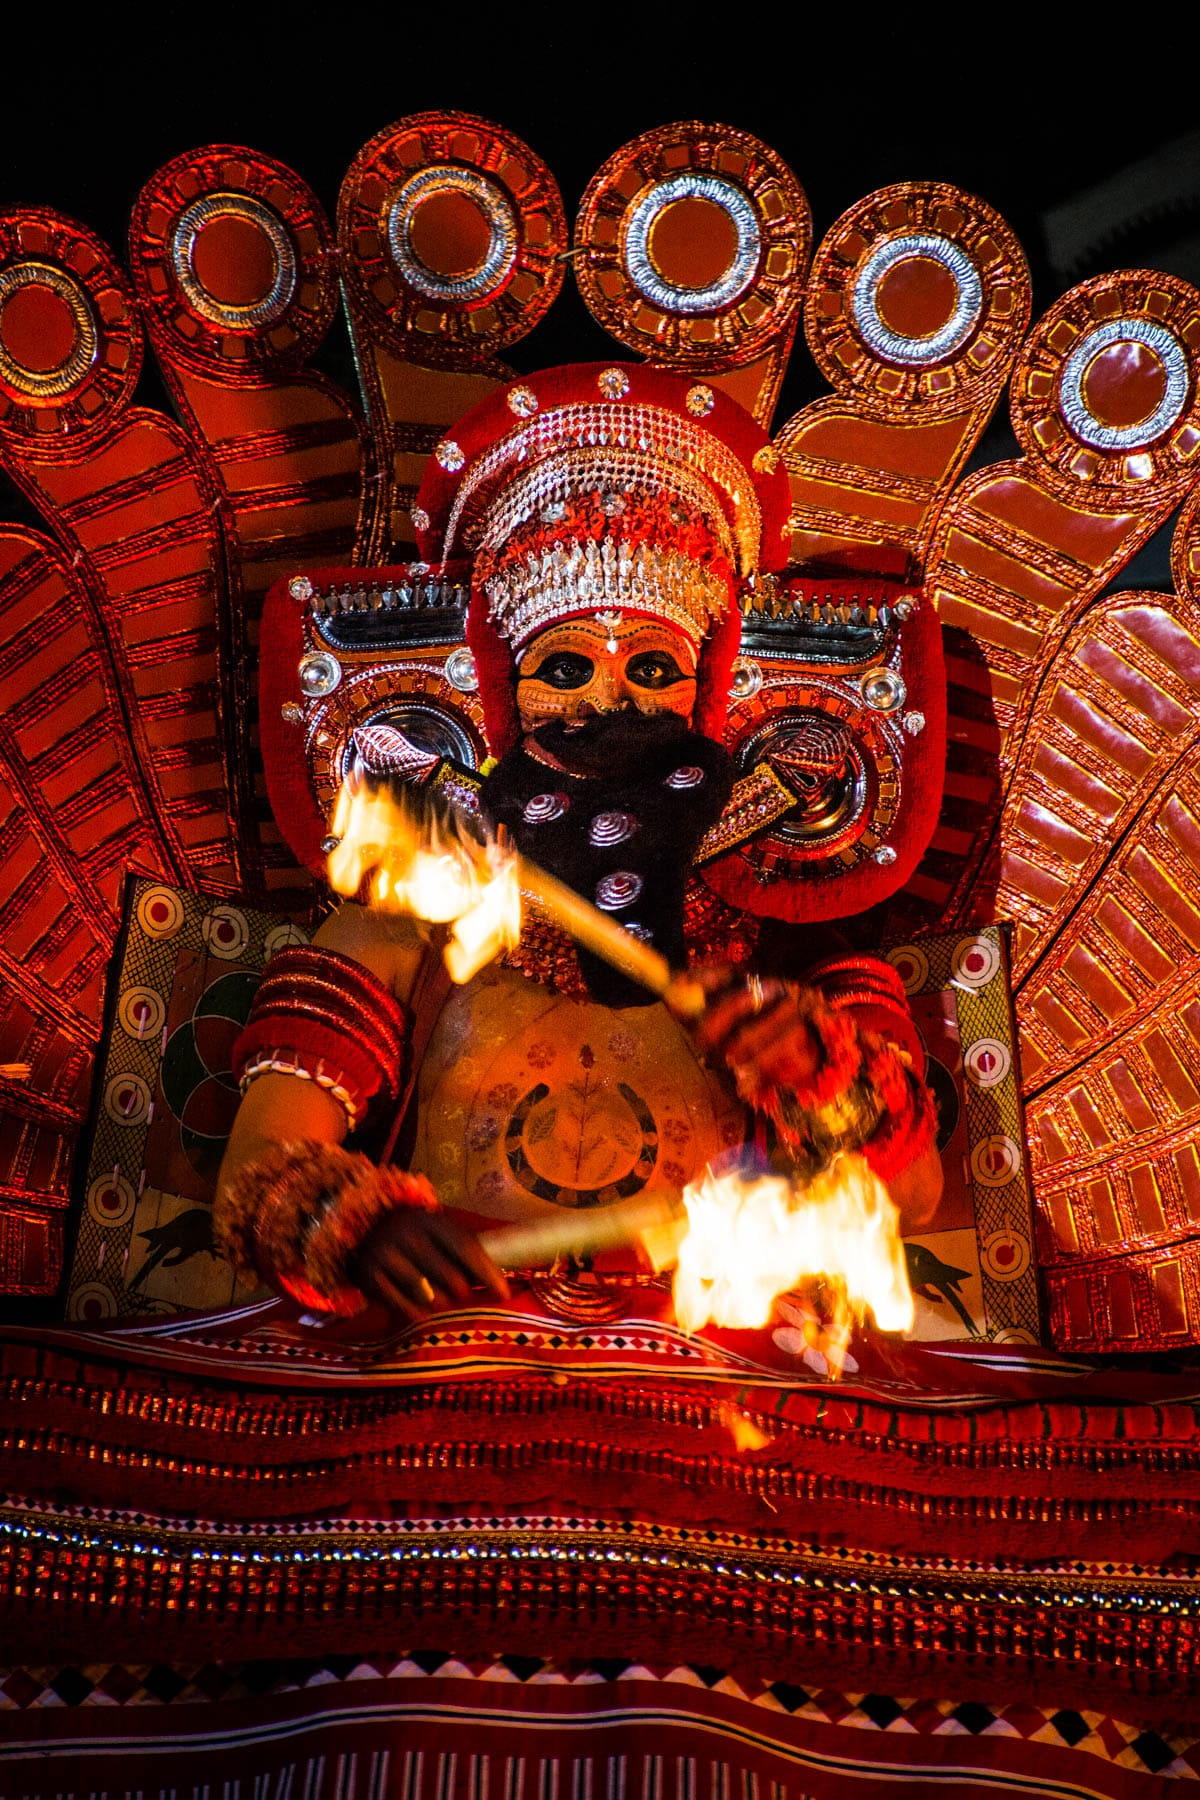 A traditional Kutty theyyam dancer with fire in Kerala, India.